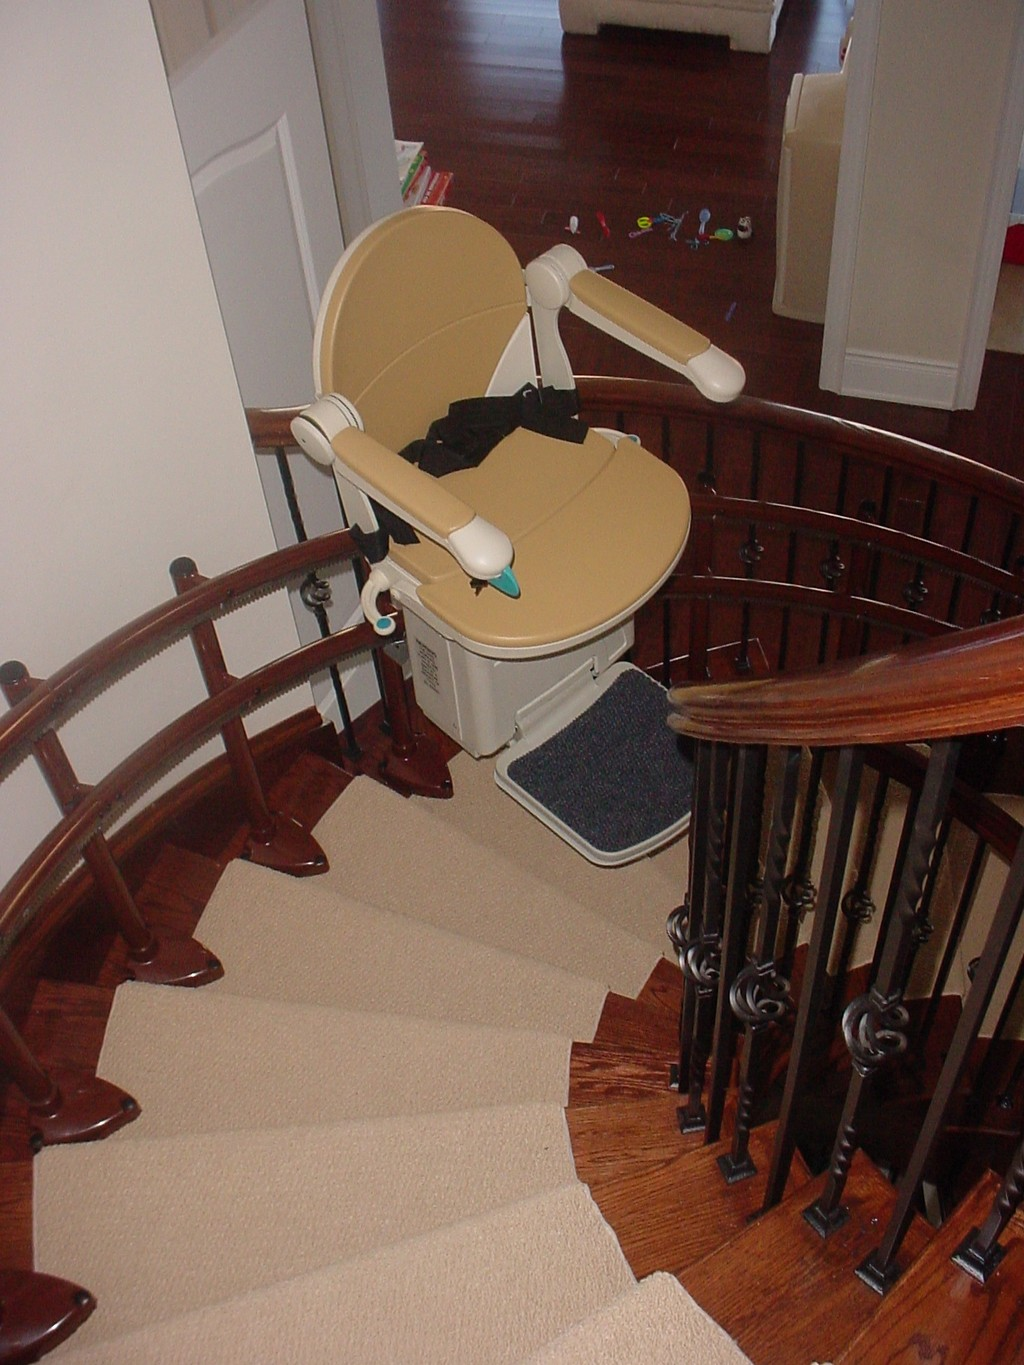 stair lifts pennsylvania, cost of chair stair lifts, acorn stairlifts jobs, stannah stairlifts usa